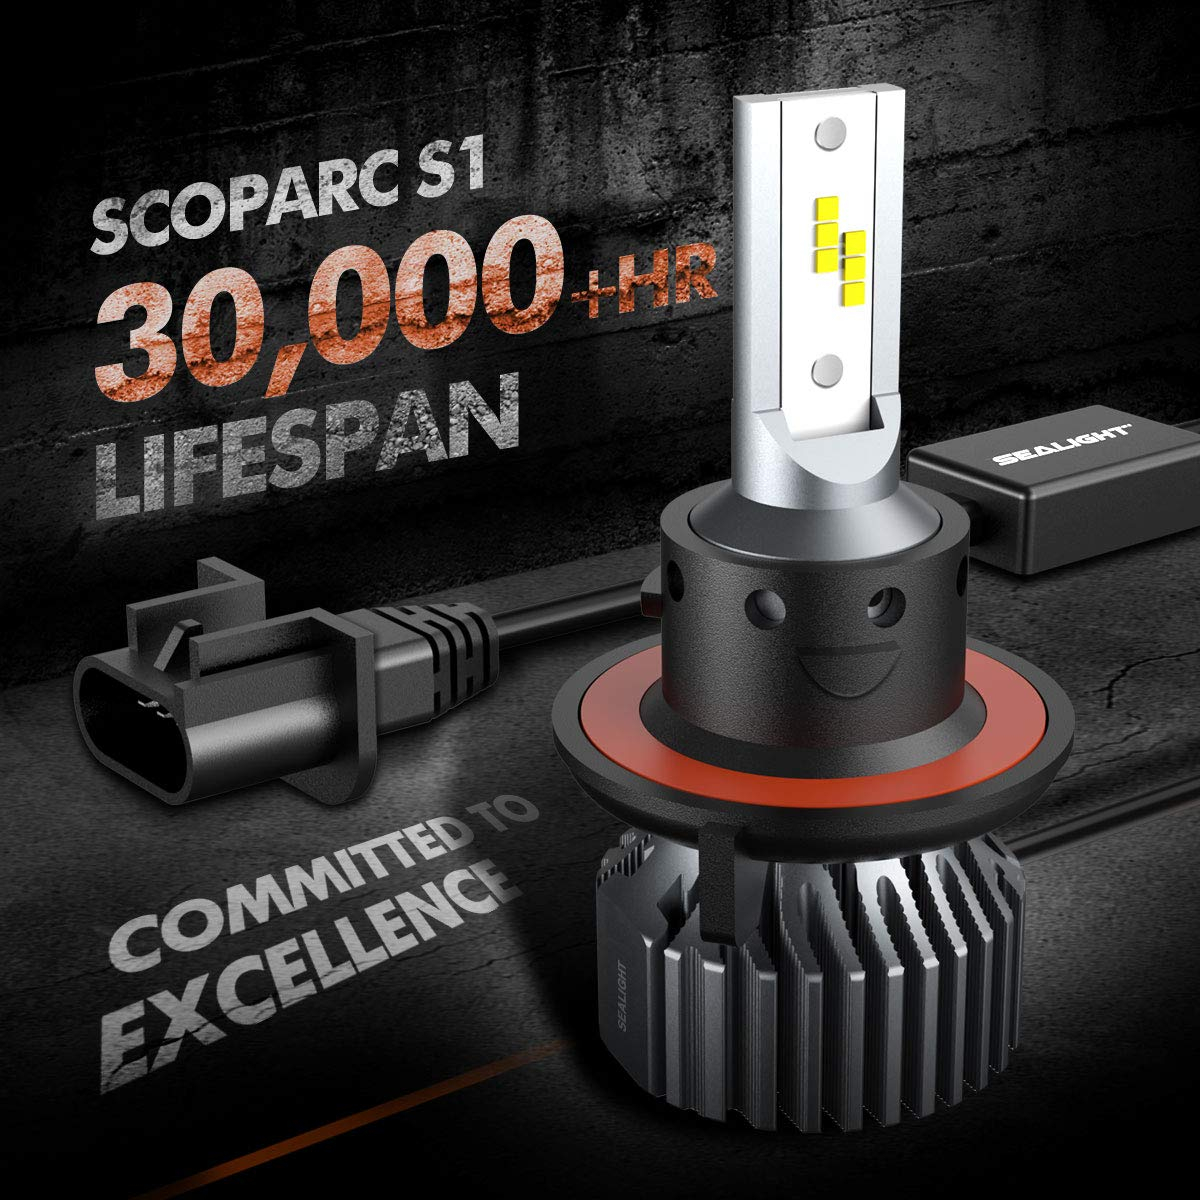 SEALIGHT Scoparc S1 H13//9008 LED Headlight Bulbs,High Beam and Low Beam,6000K Bright White,Halogen Replacement,Quick Installation